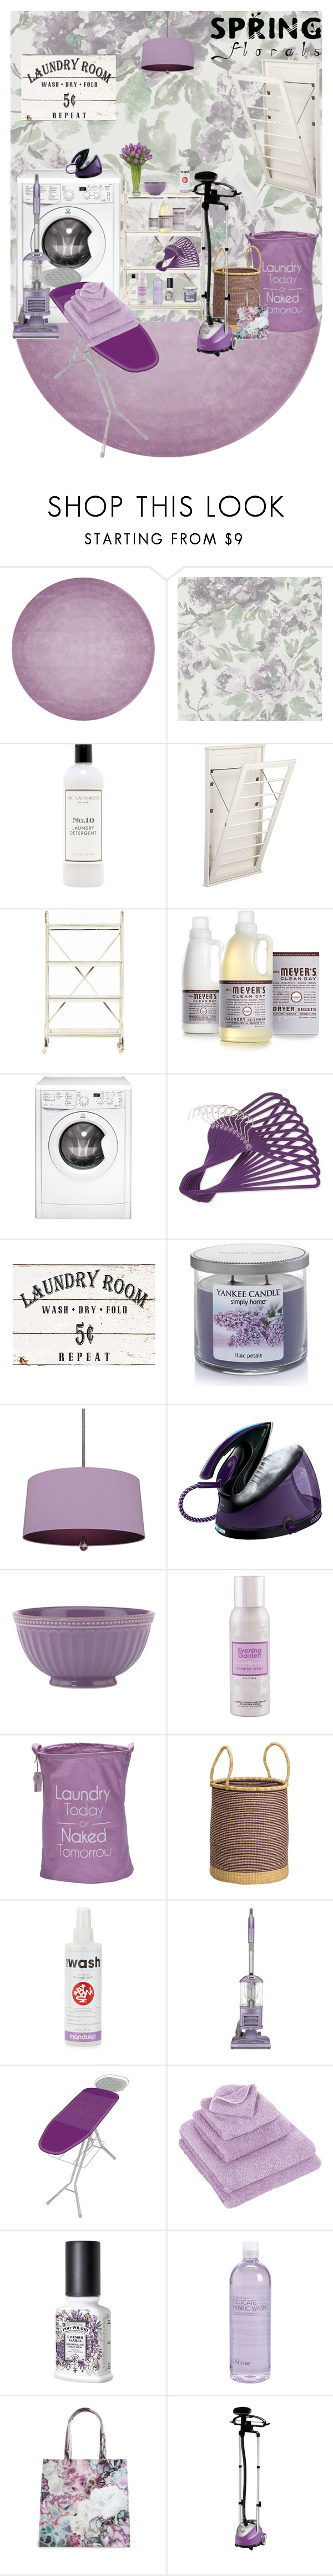 """Spring Cleaning"" by rachael-aislynn ❤ liked on Polyvore featuring interior, interiors, interior design, home, home decor, interior decorating, By Second Studio, Designers Guild, The Laundress and Improvements"